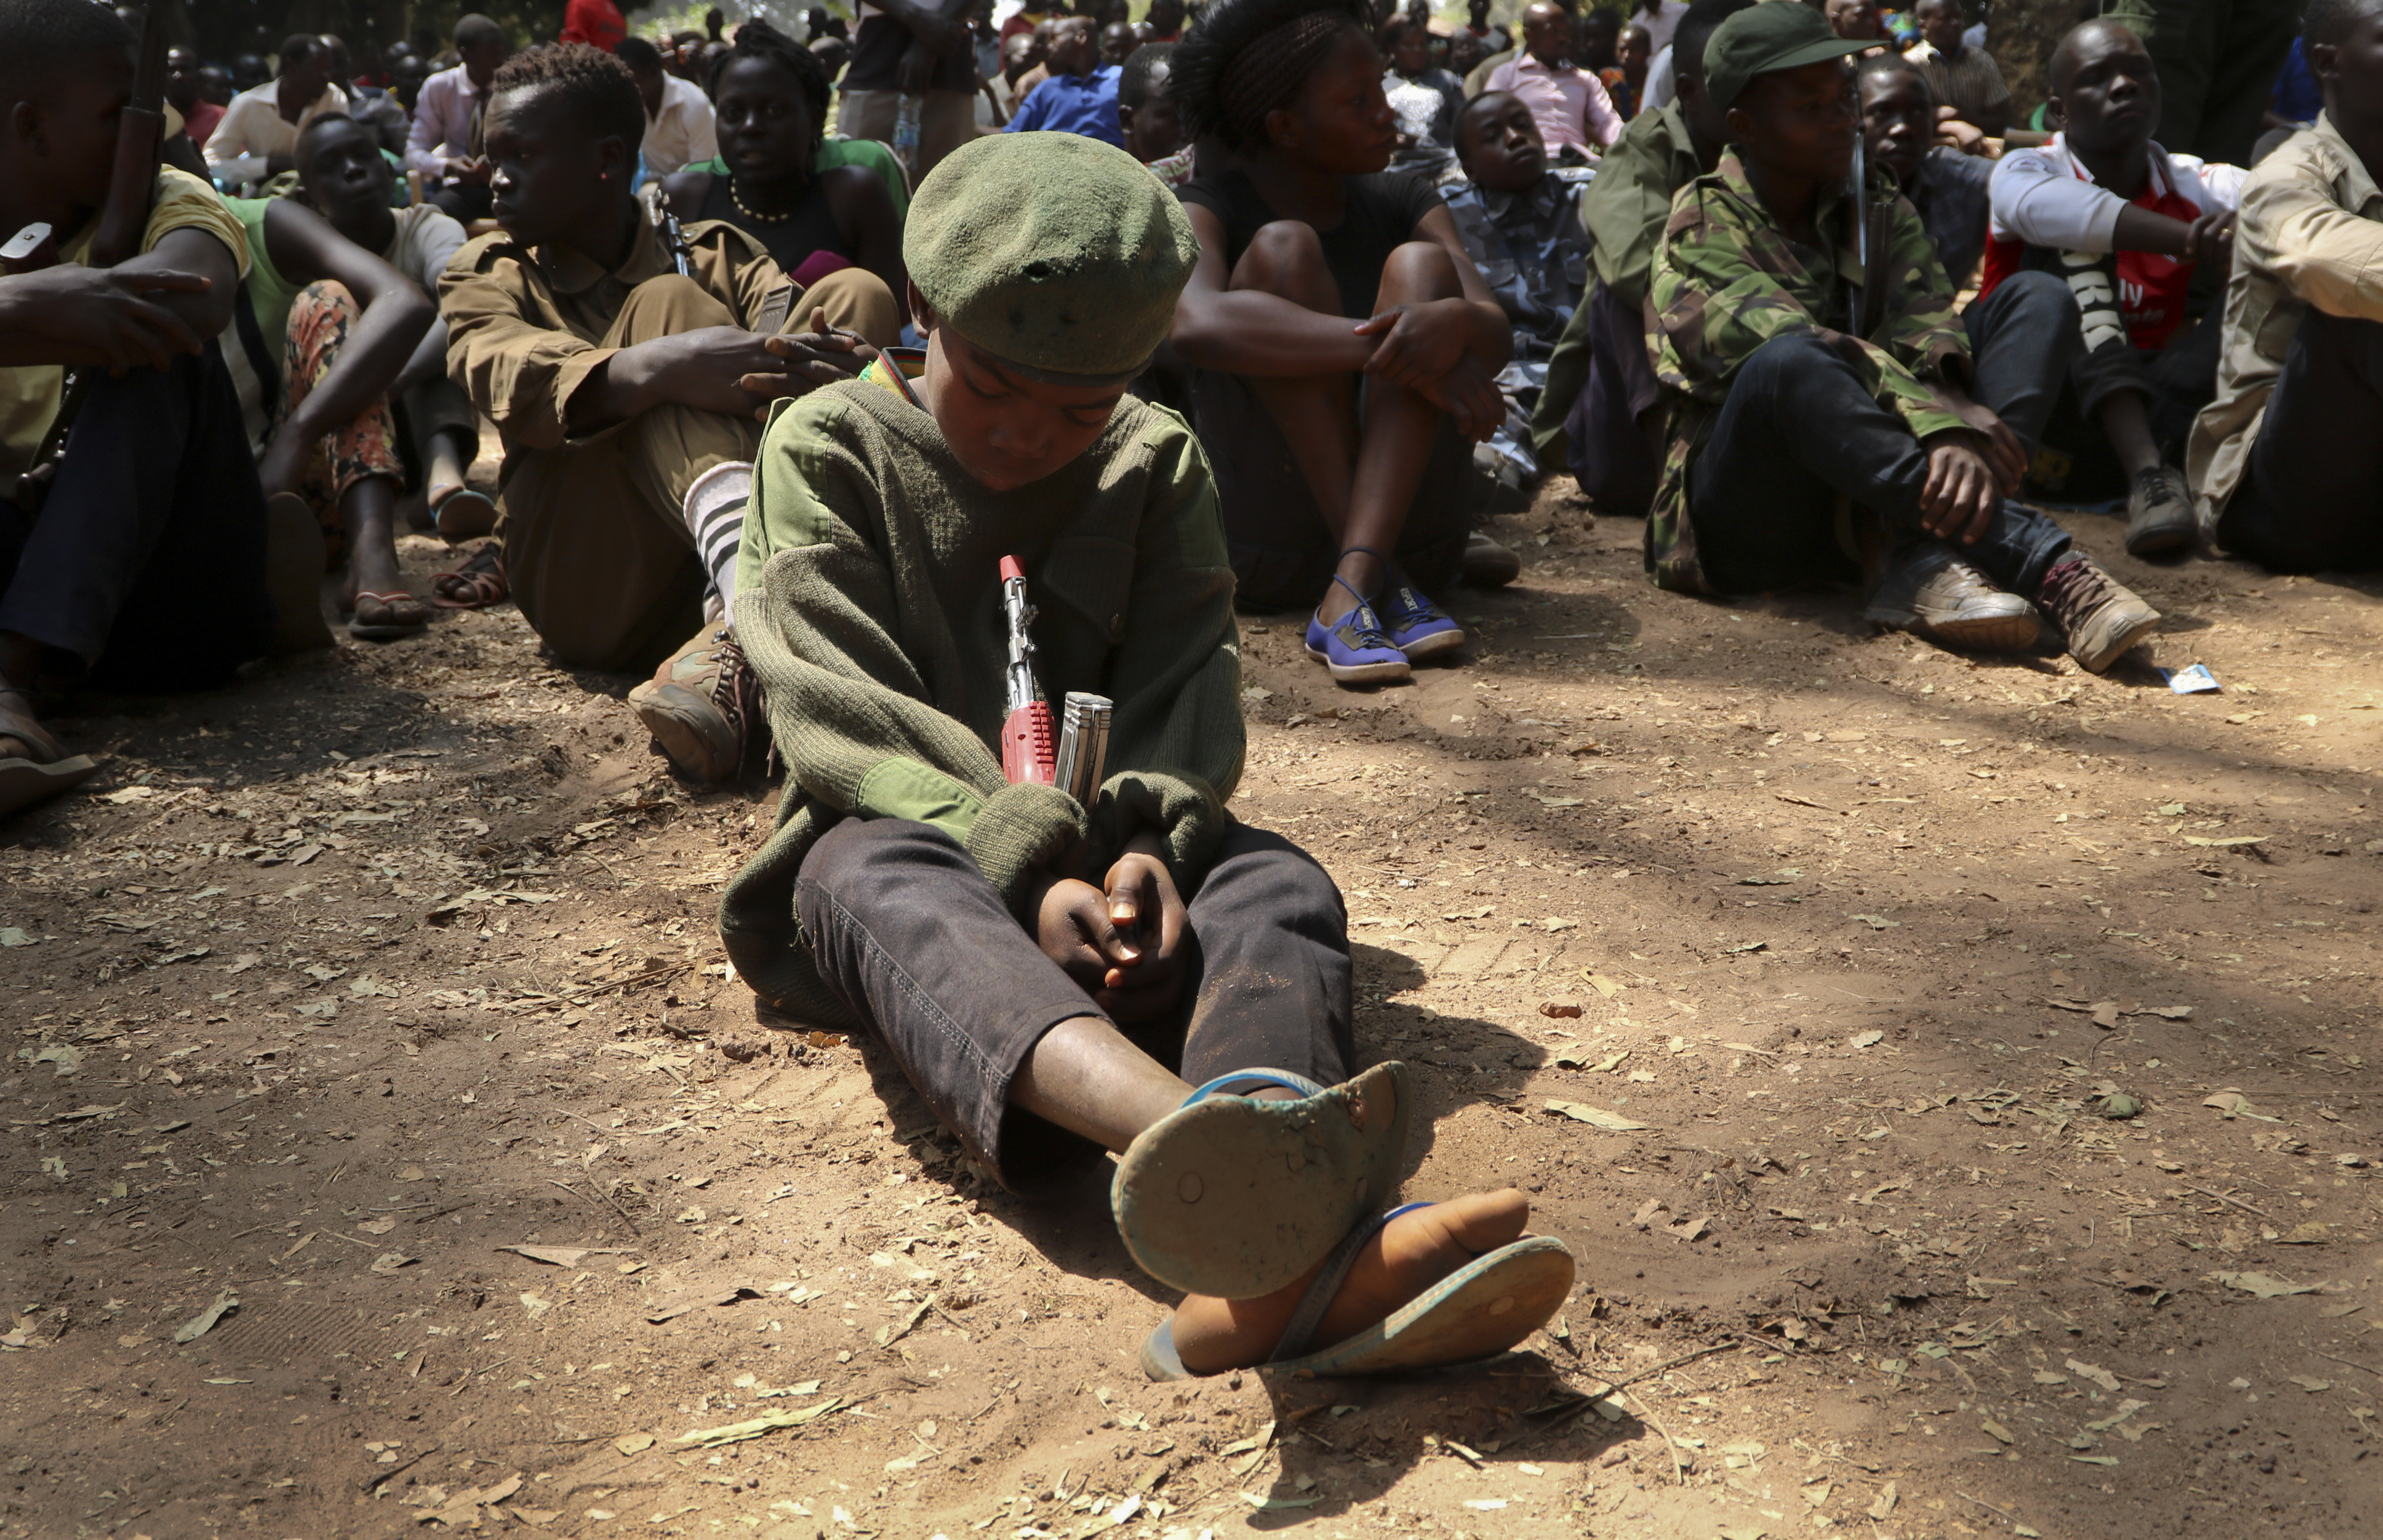 A young child soldier sits on the ground at a release ceremony, where he and others laid down their weapons and traded in their uniforms to return to